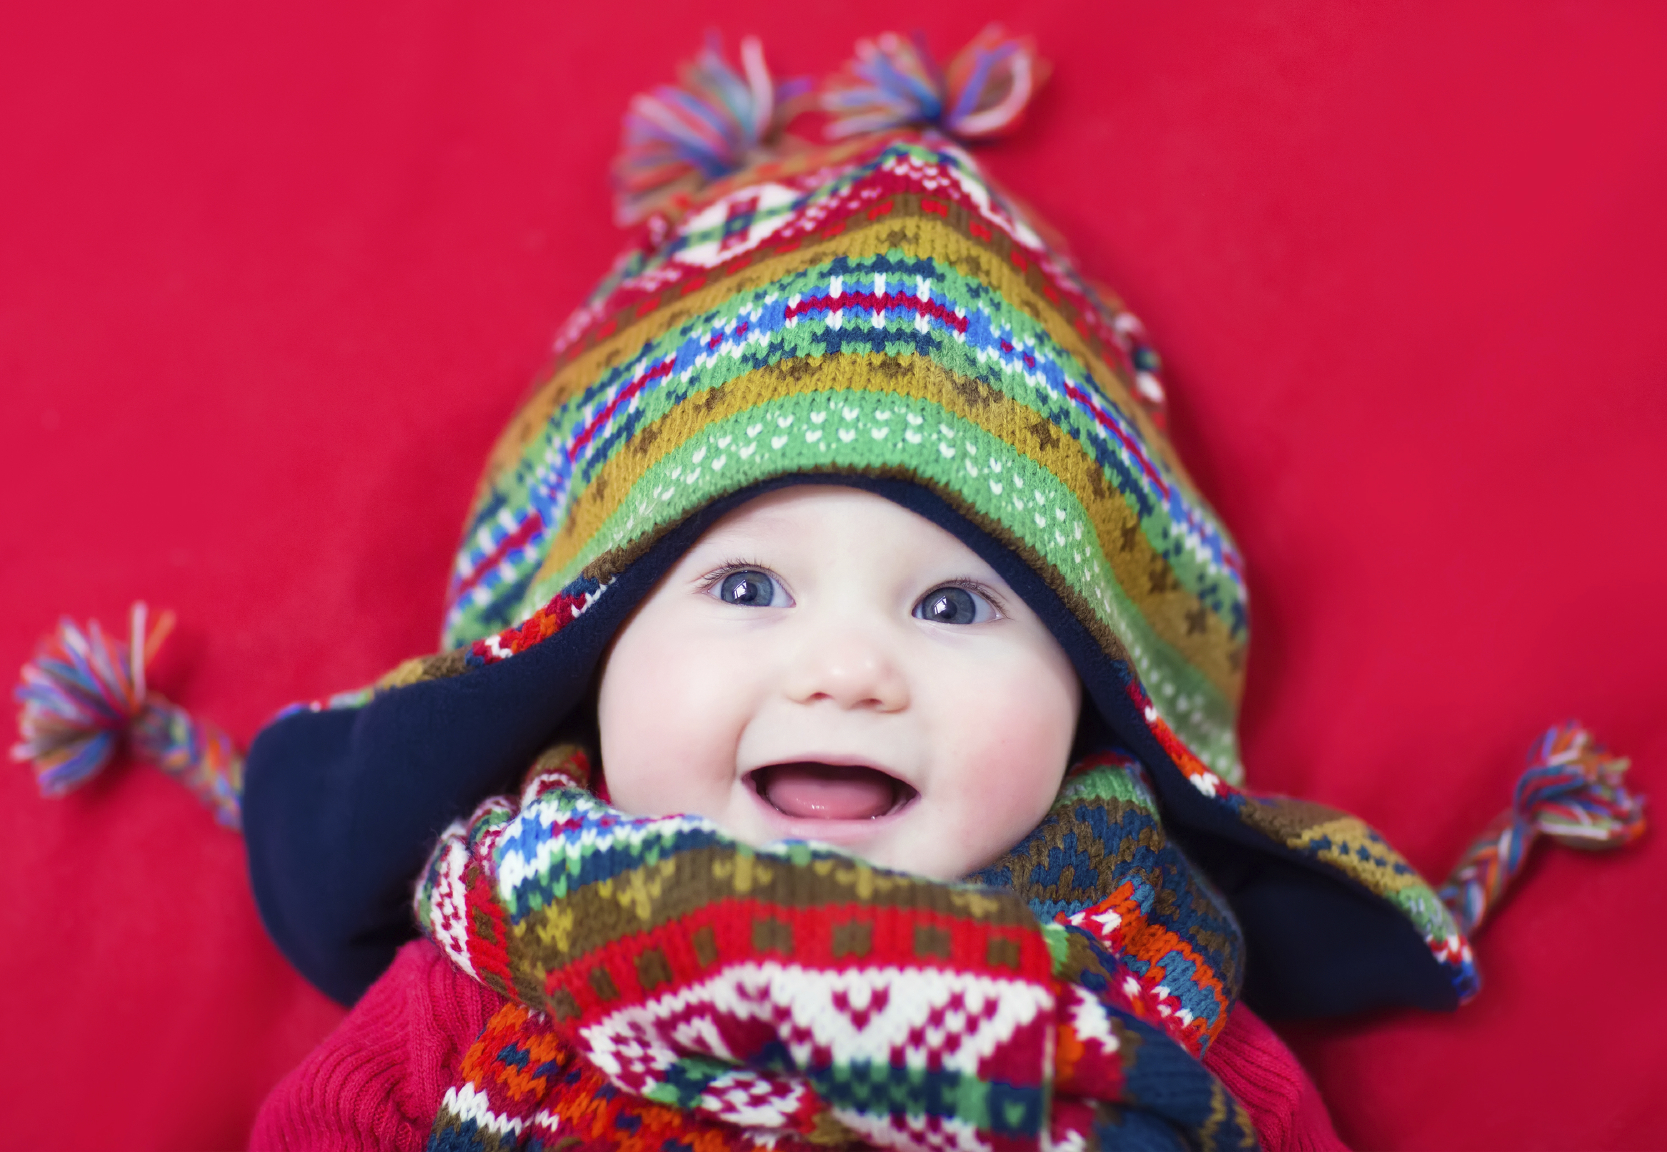 12 Things to Know About Bundling Up Baby this Winter